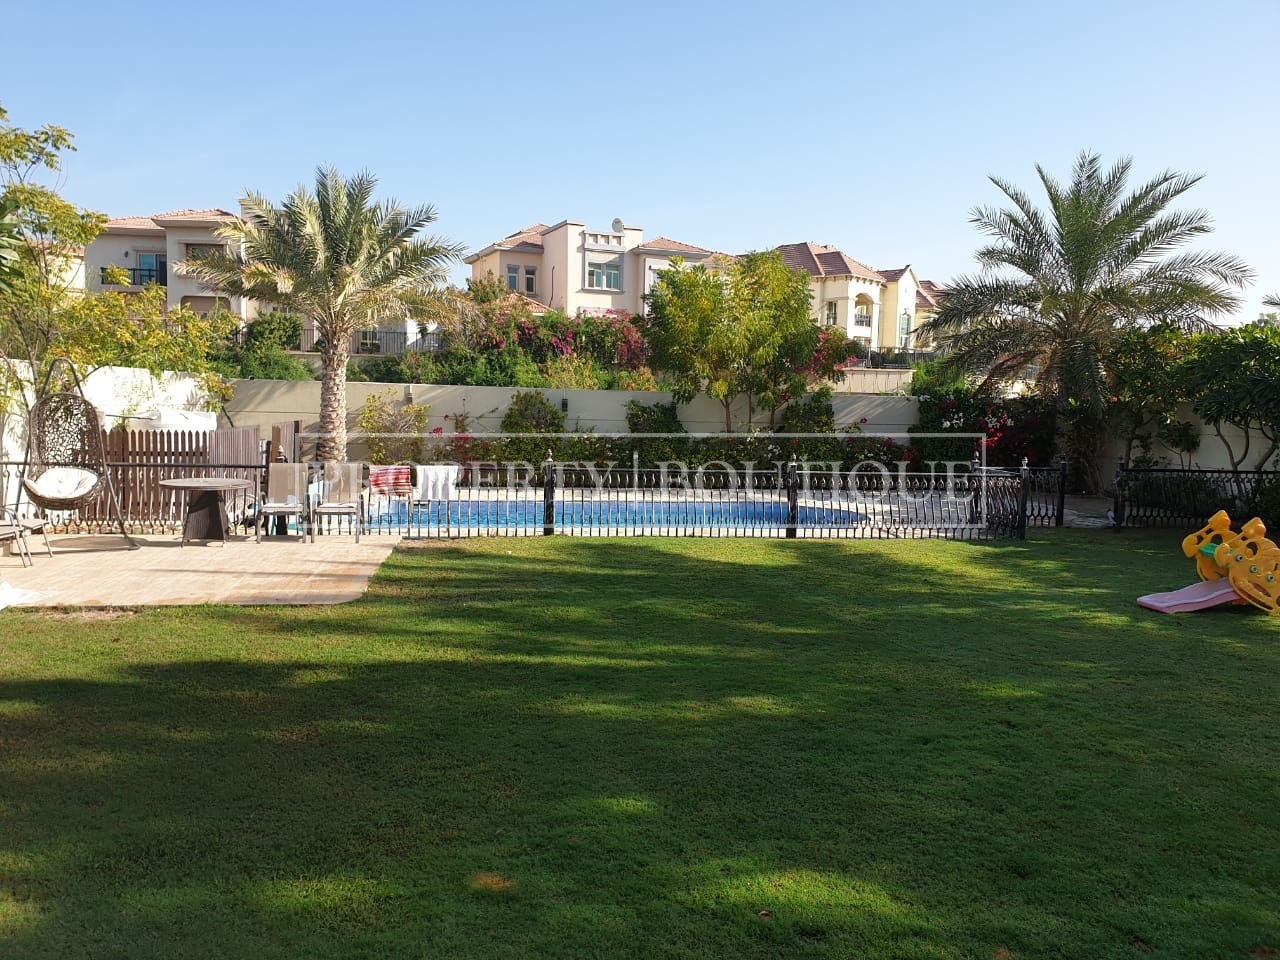 legacy-4-bed-private-pool-lake-view-large-plot